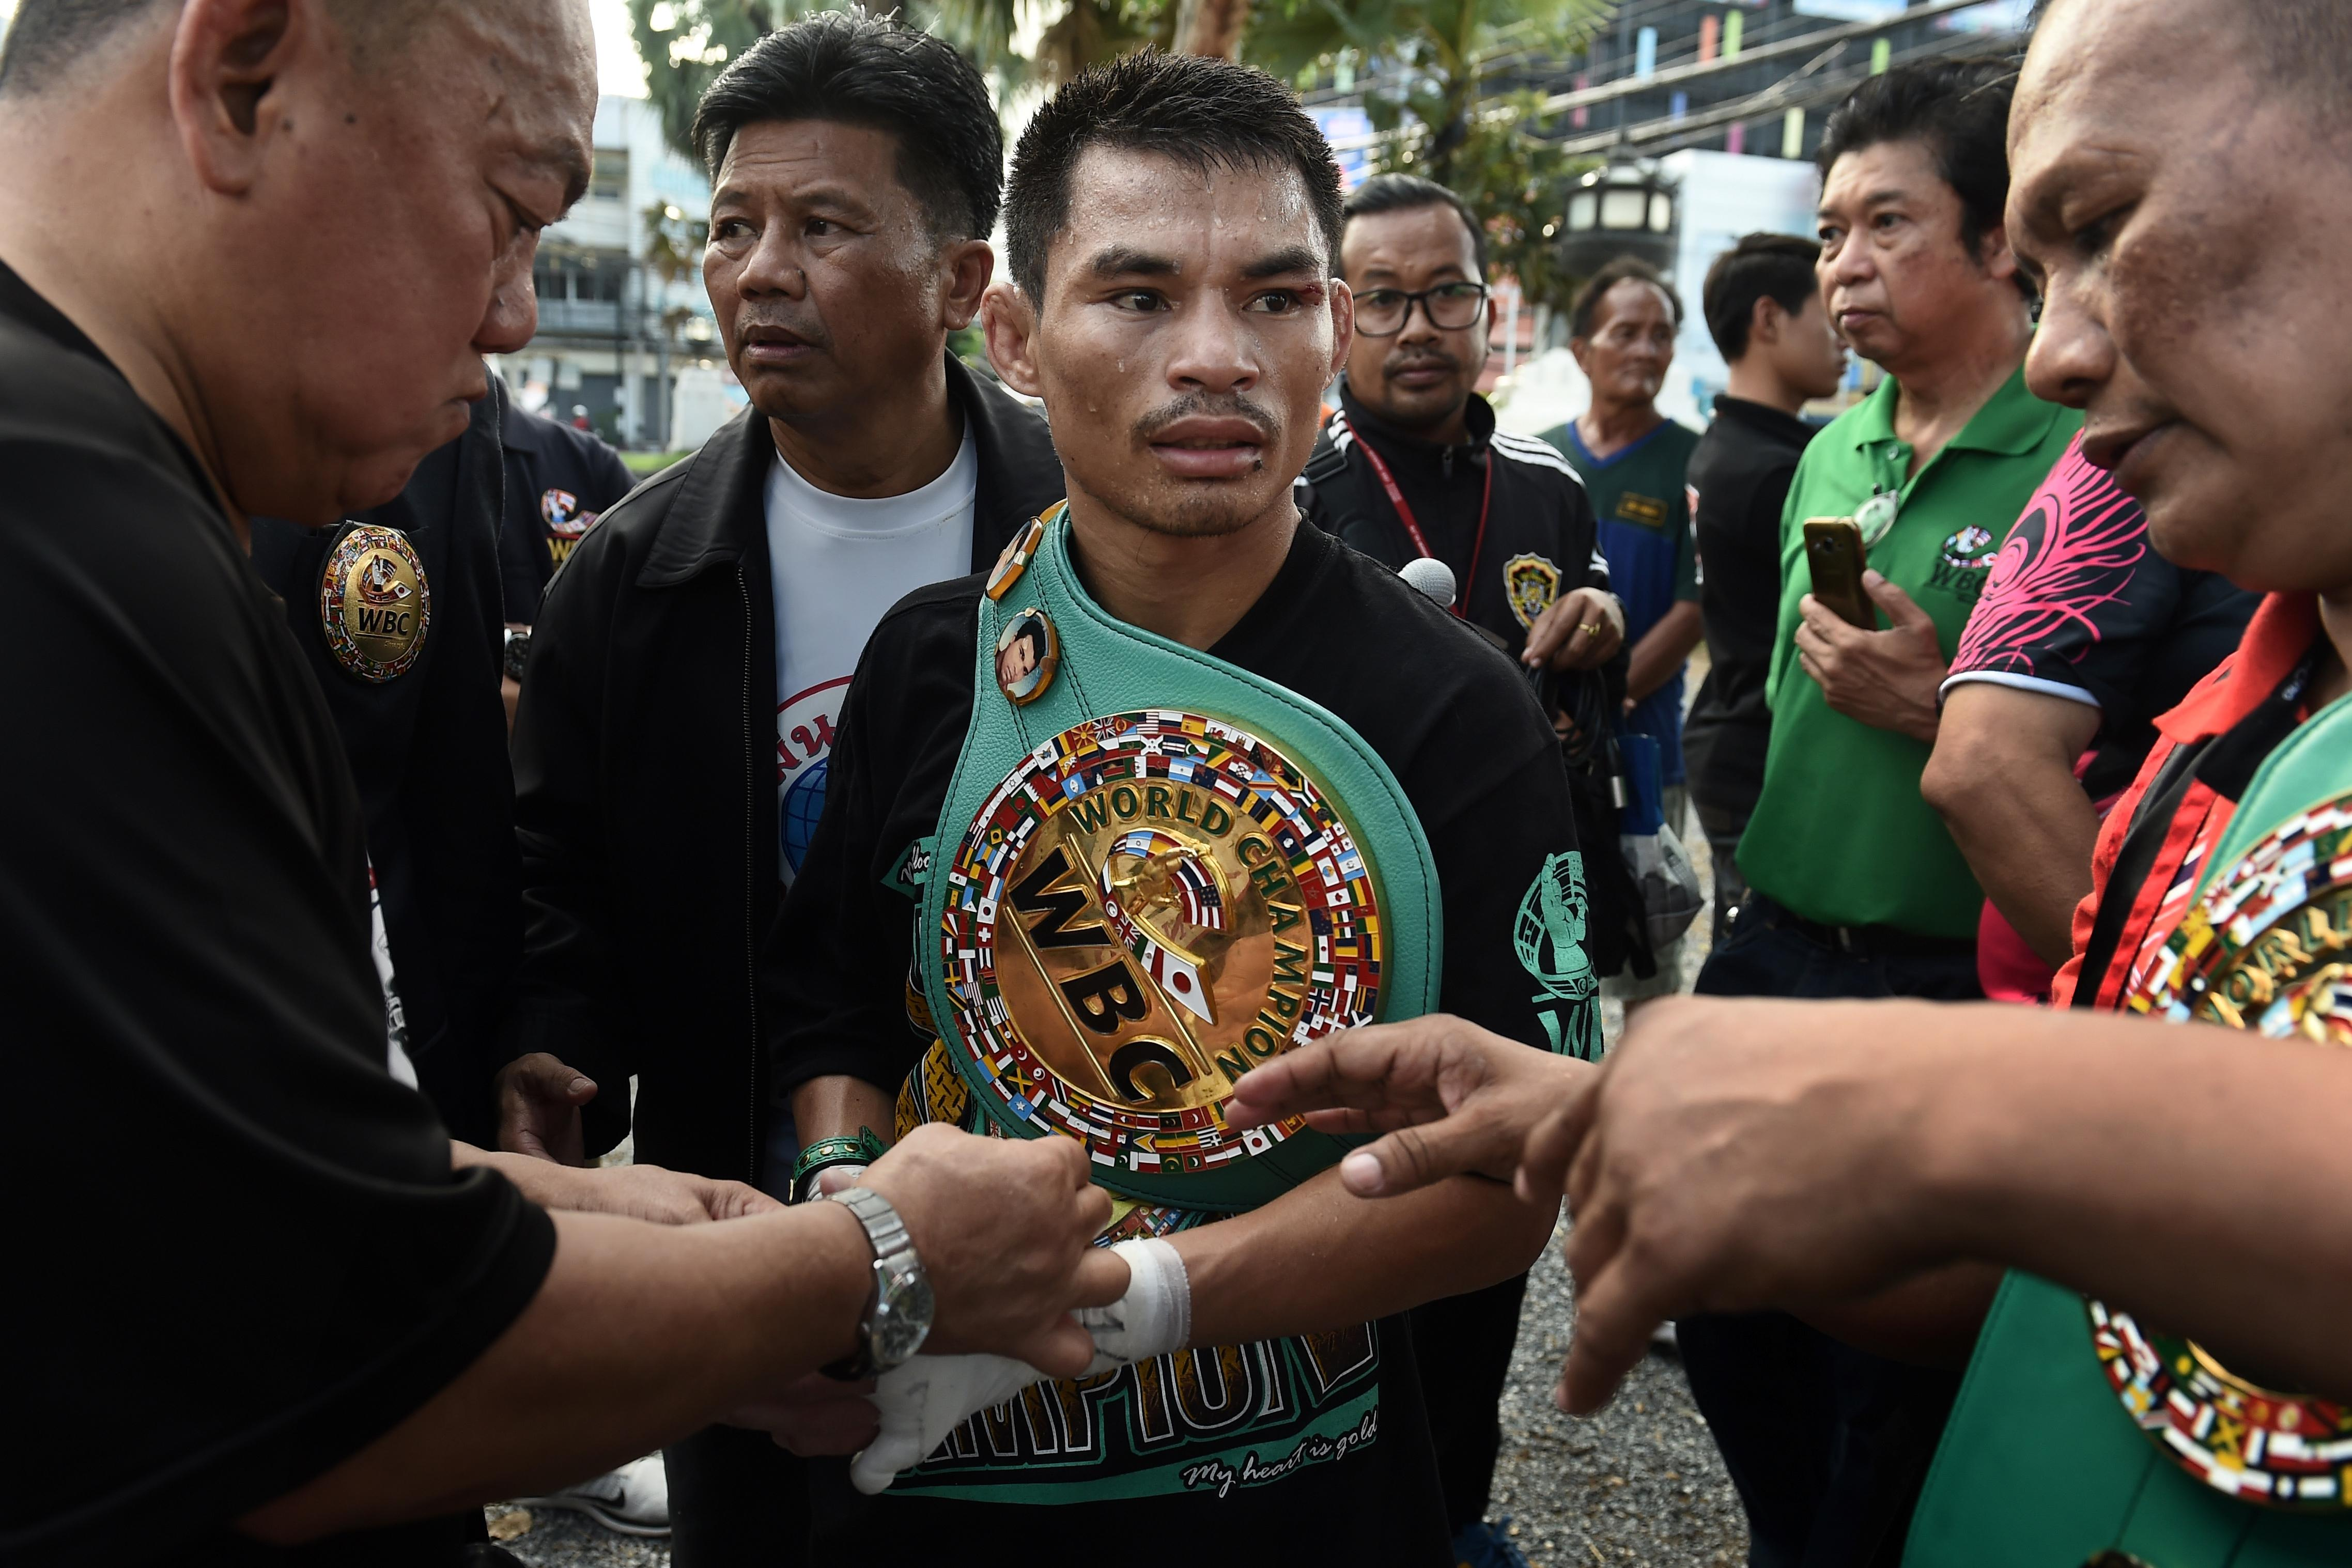 Thai boxer Wanheng Menayothin now holds the greatest flawless record in boxing hsitory